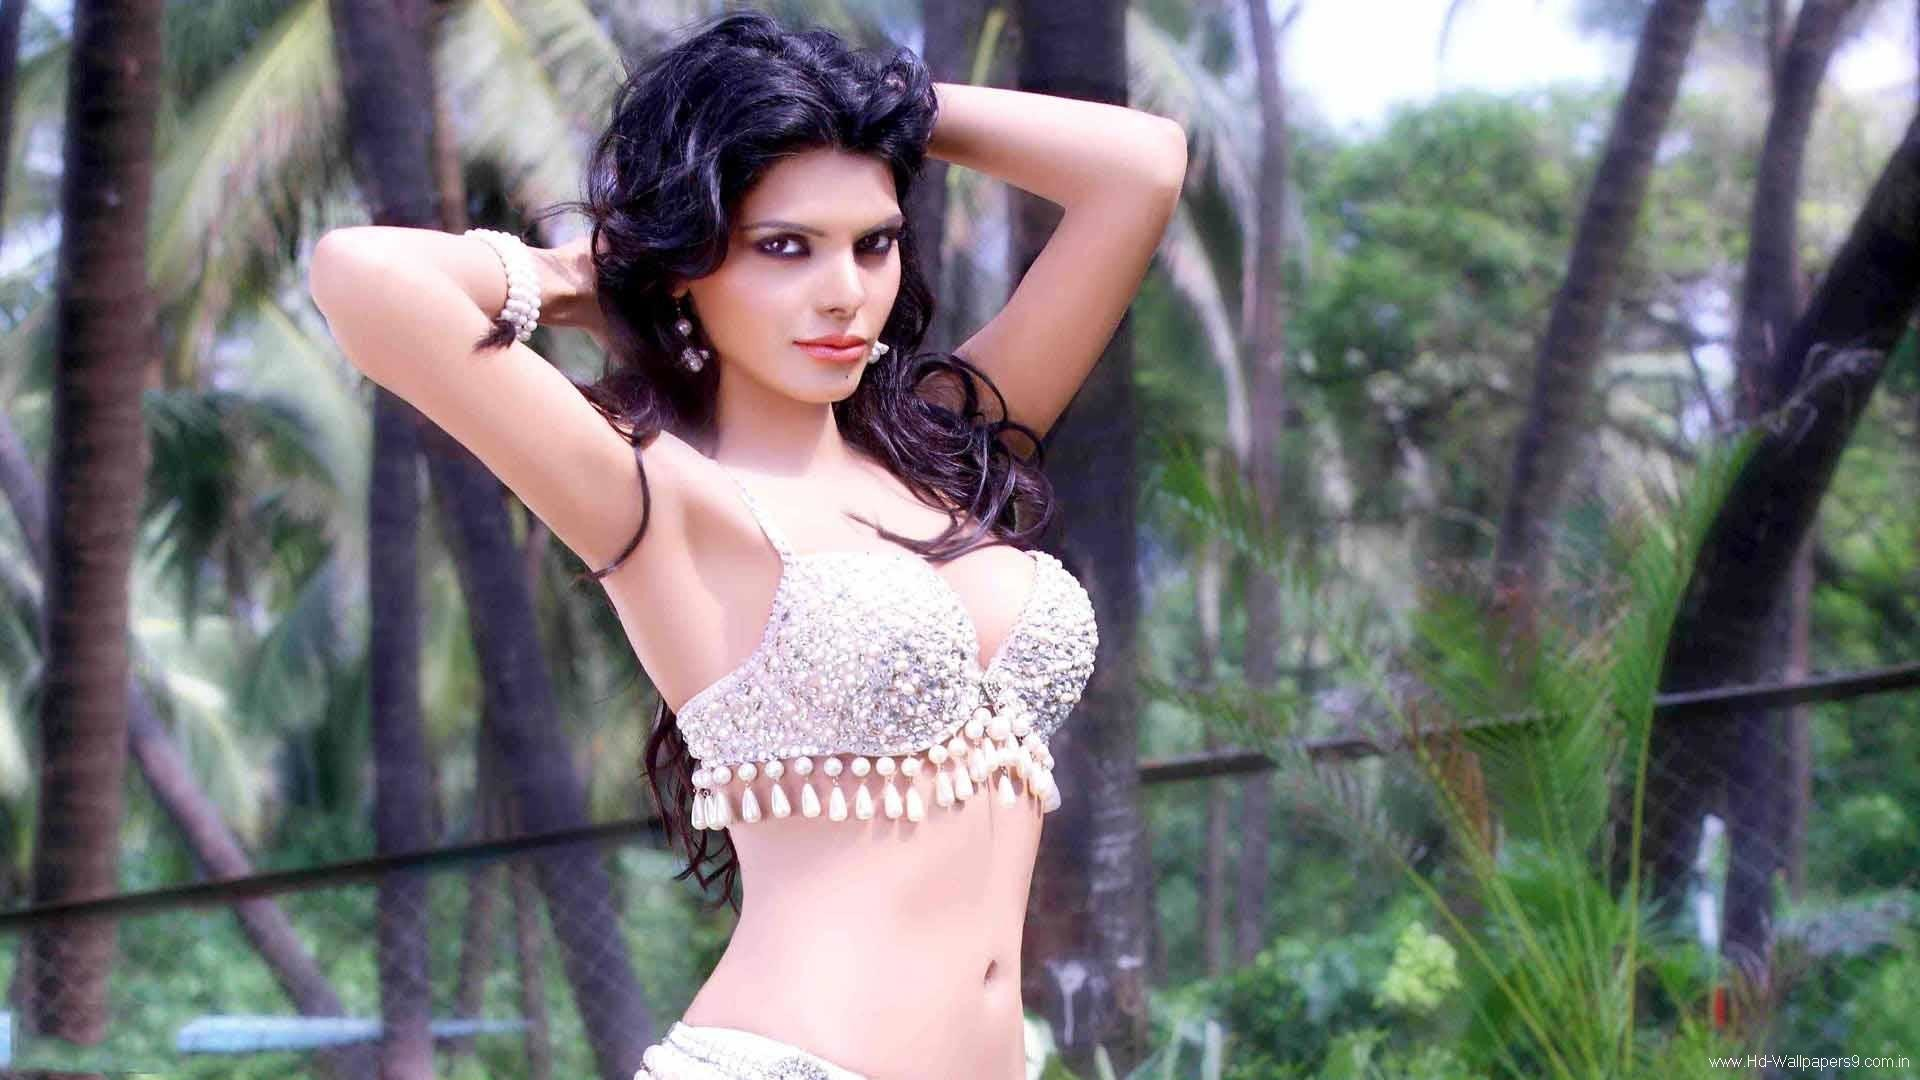 Indian Actress Sherlyn Chopra HD Wallpapers